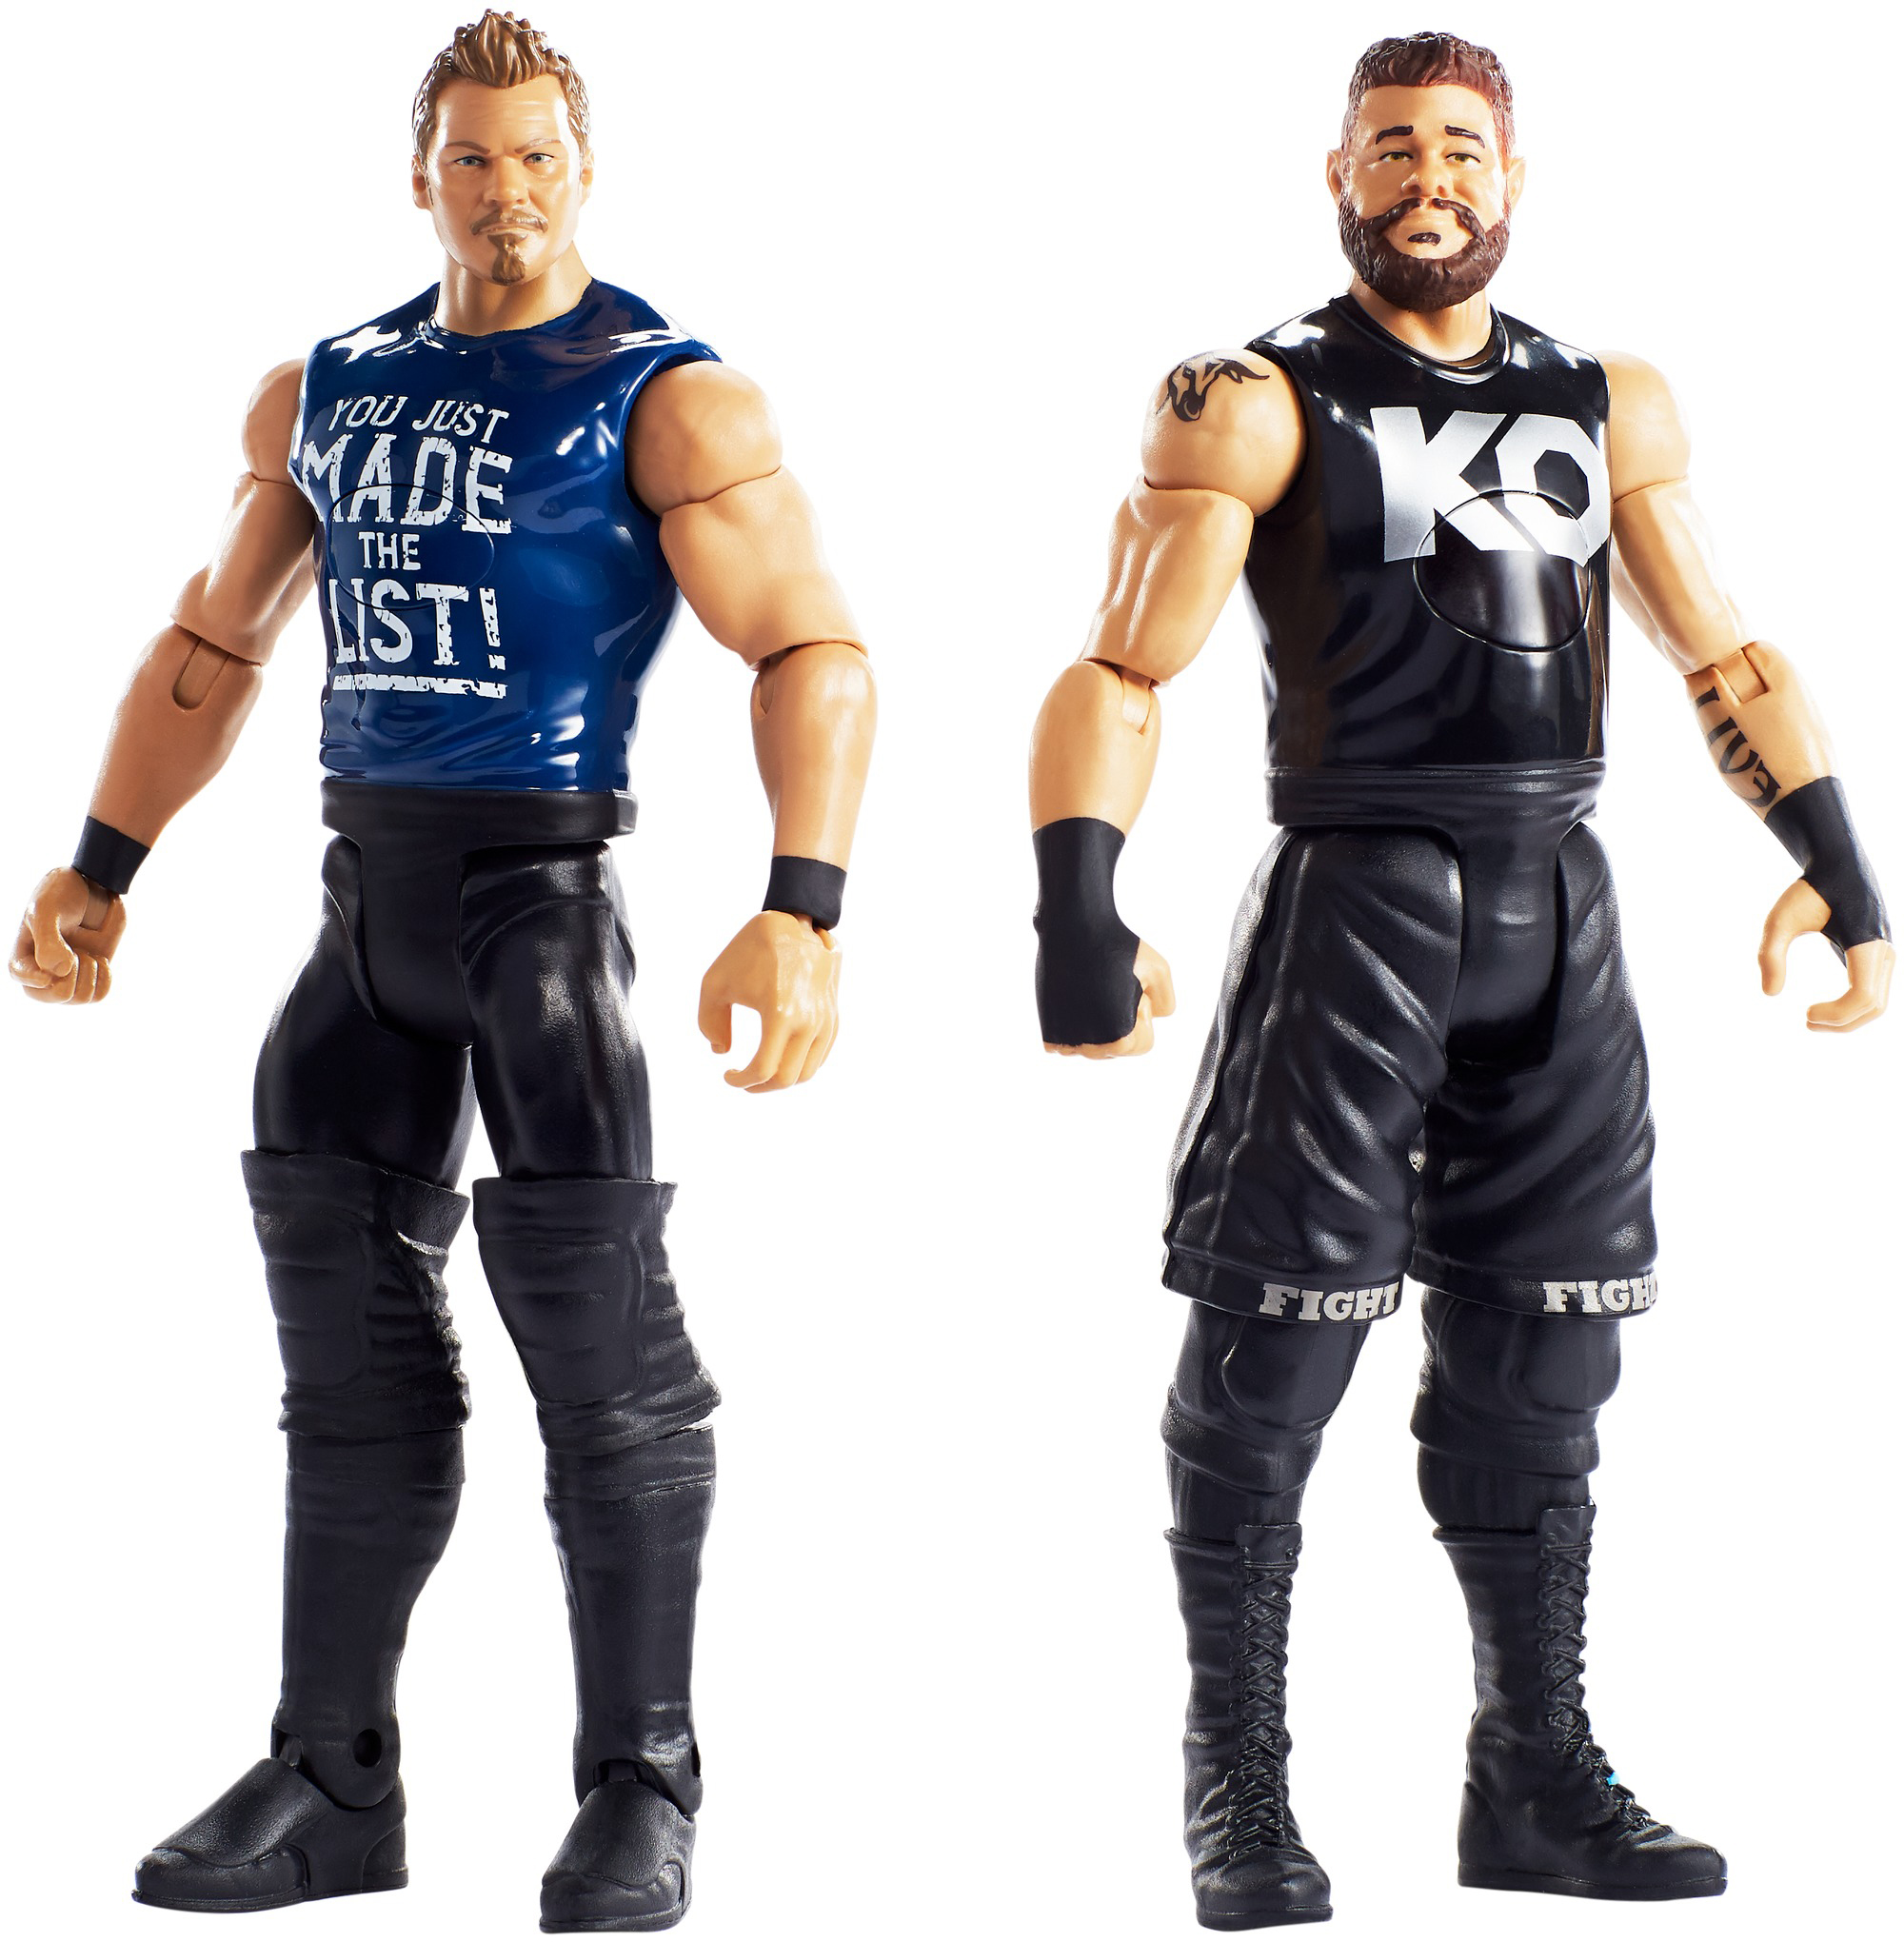 WWE Tough Talkers Total Tag Team Kevin Owens & Chris Jericho 2-Pack by Mattel